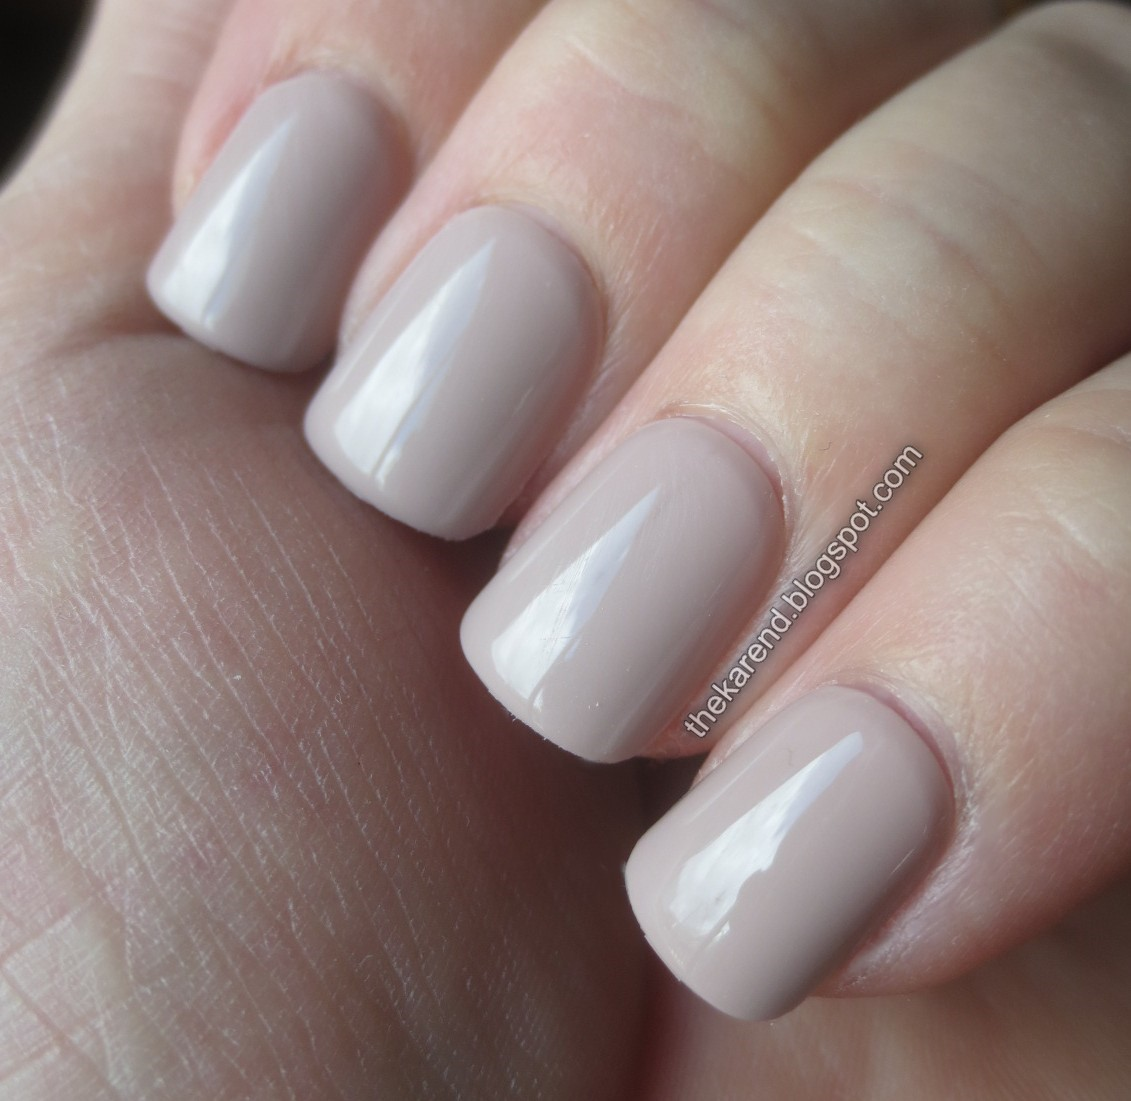 Frazzle and Aniploish: Nails of the Day Roundup